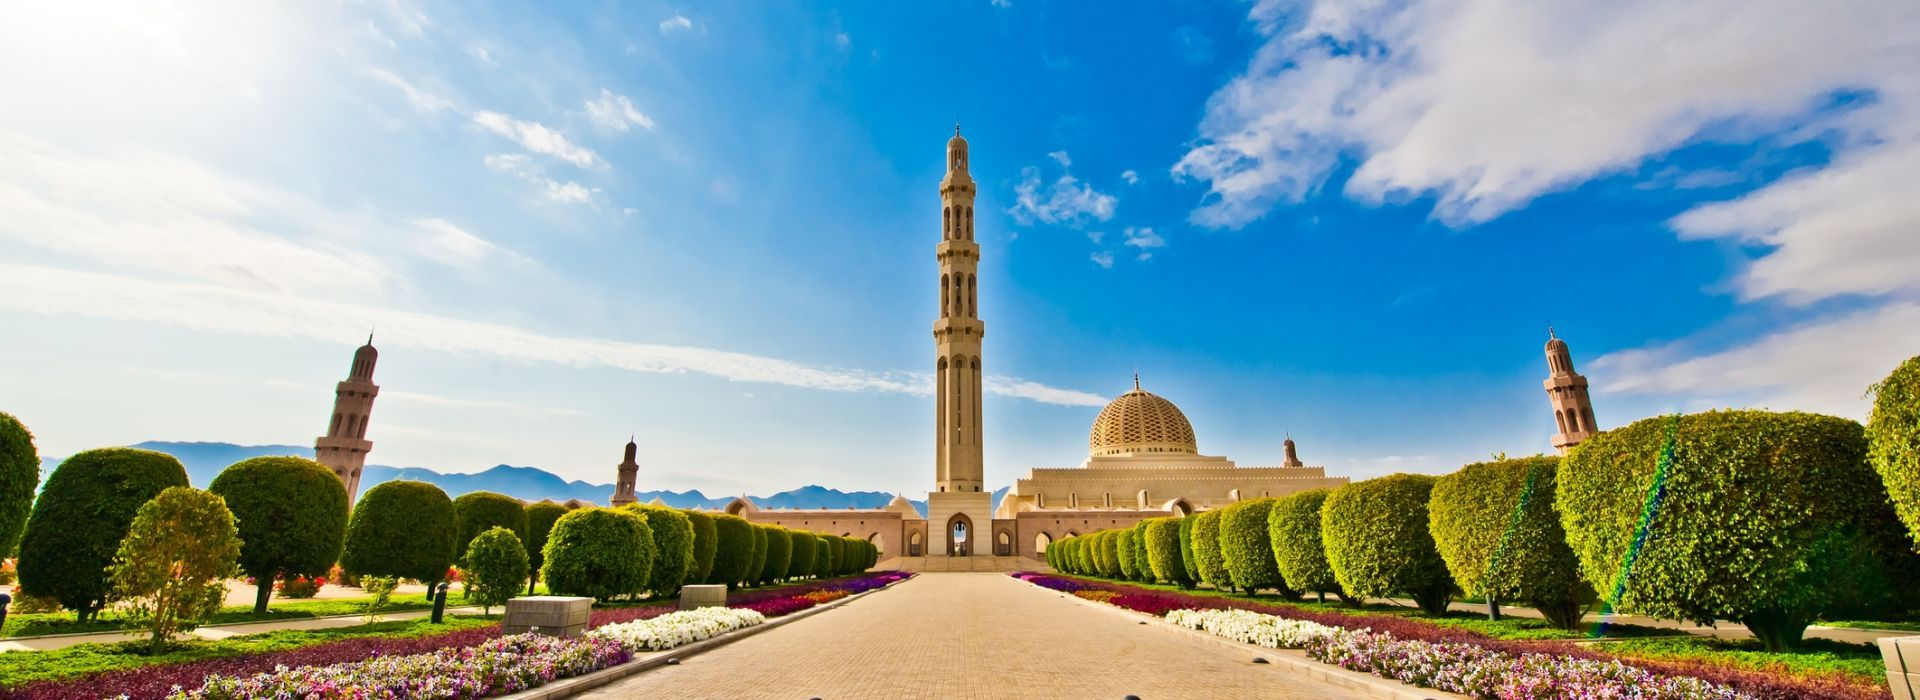 Wildlife, landscapes and nature Tours in Muscat